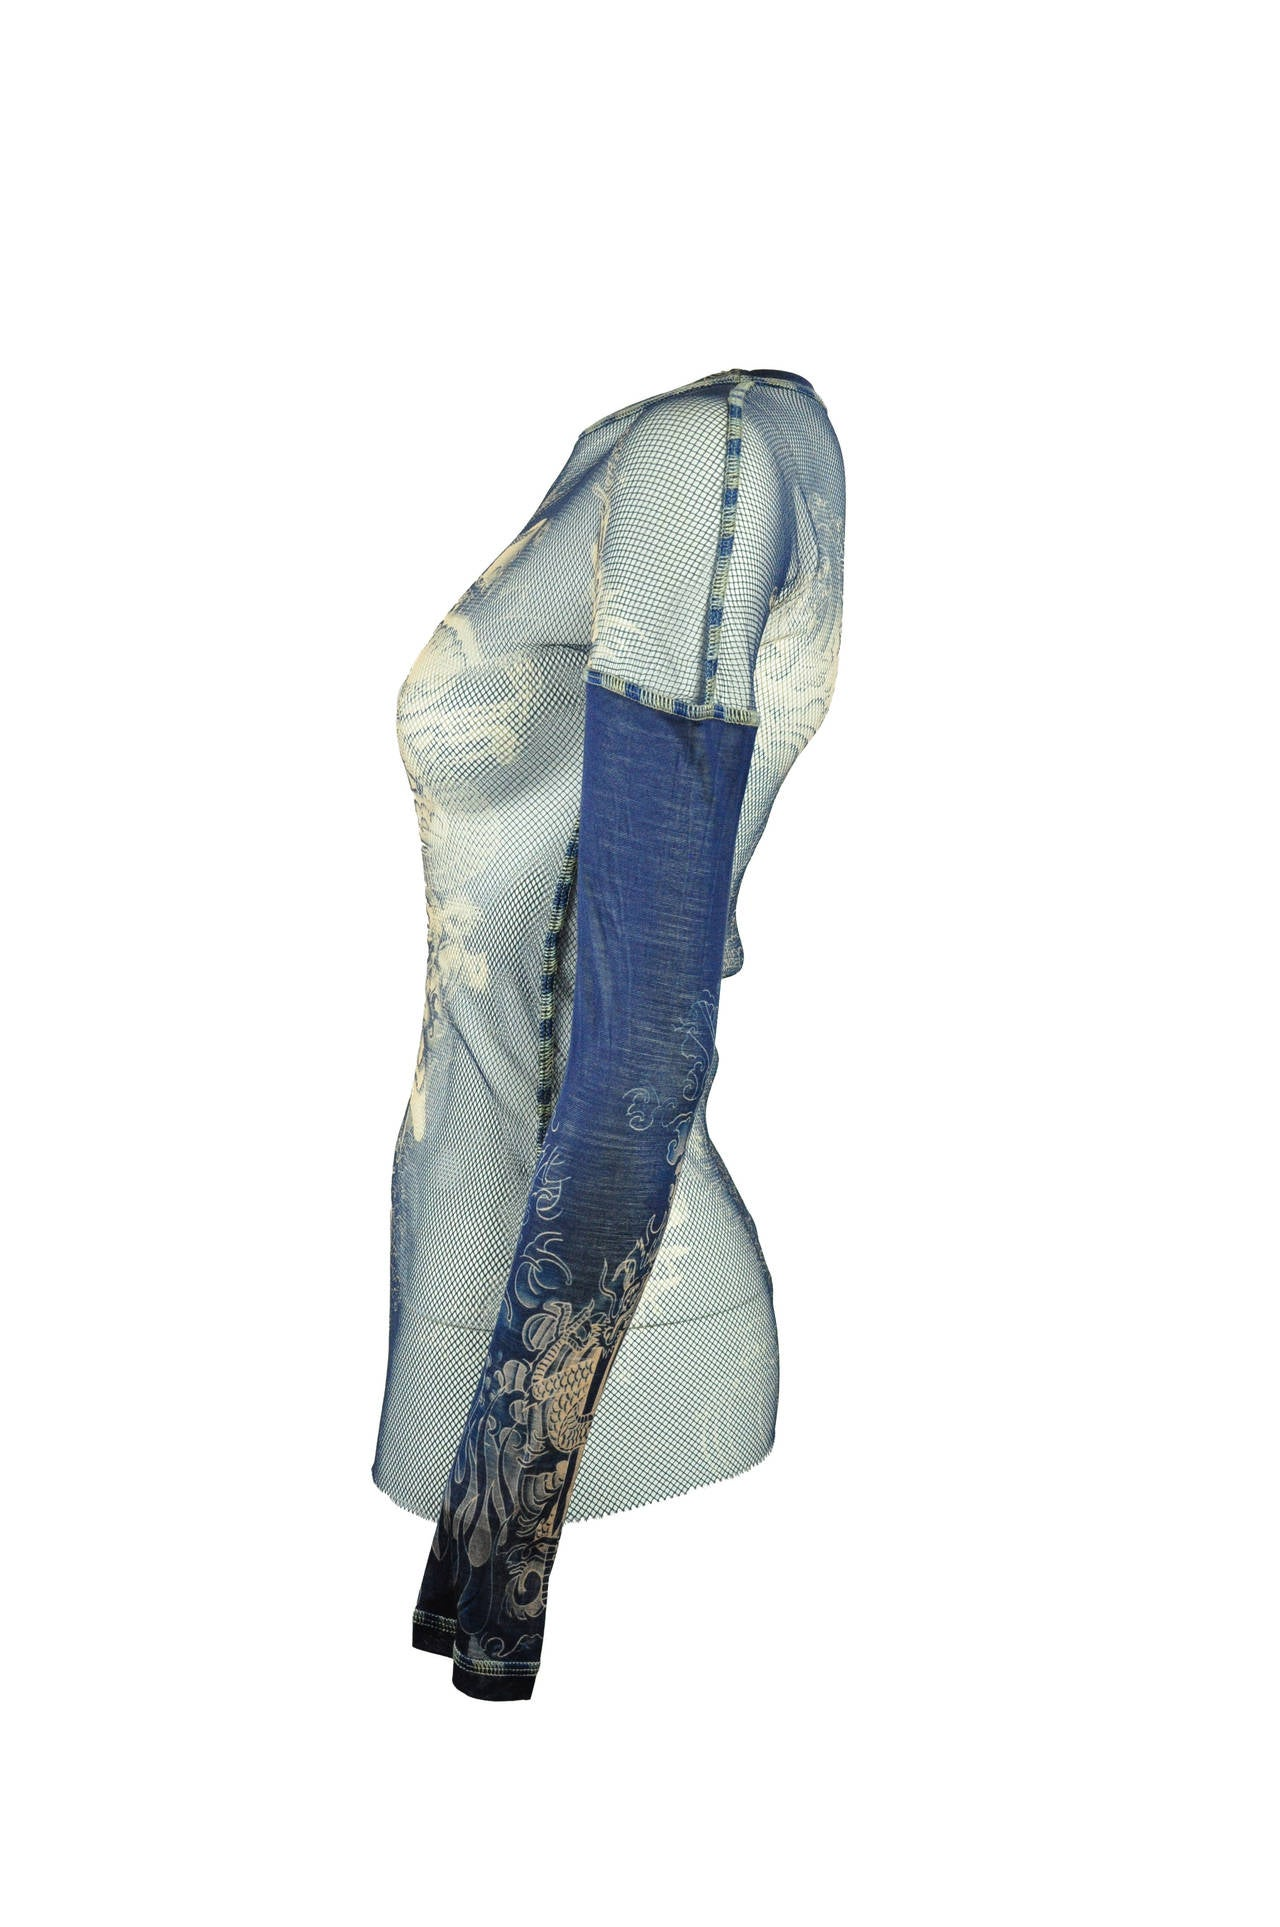 A very iconic tattoo print mesh top from Jean Paul Gaultier, long sleeves in silk Size is small.